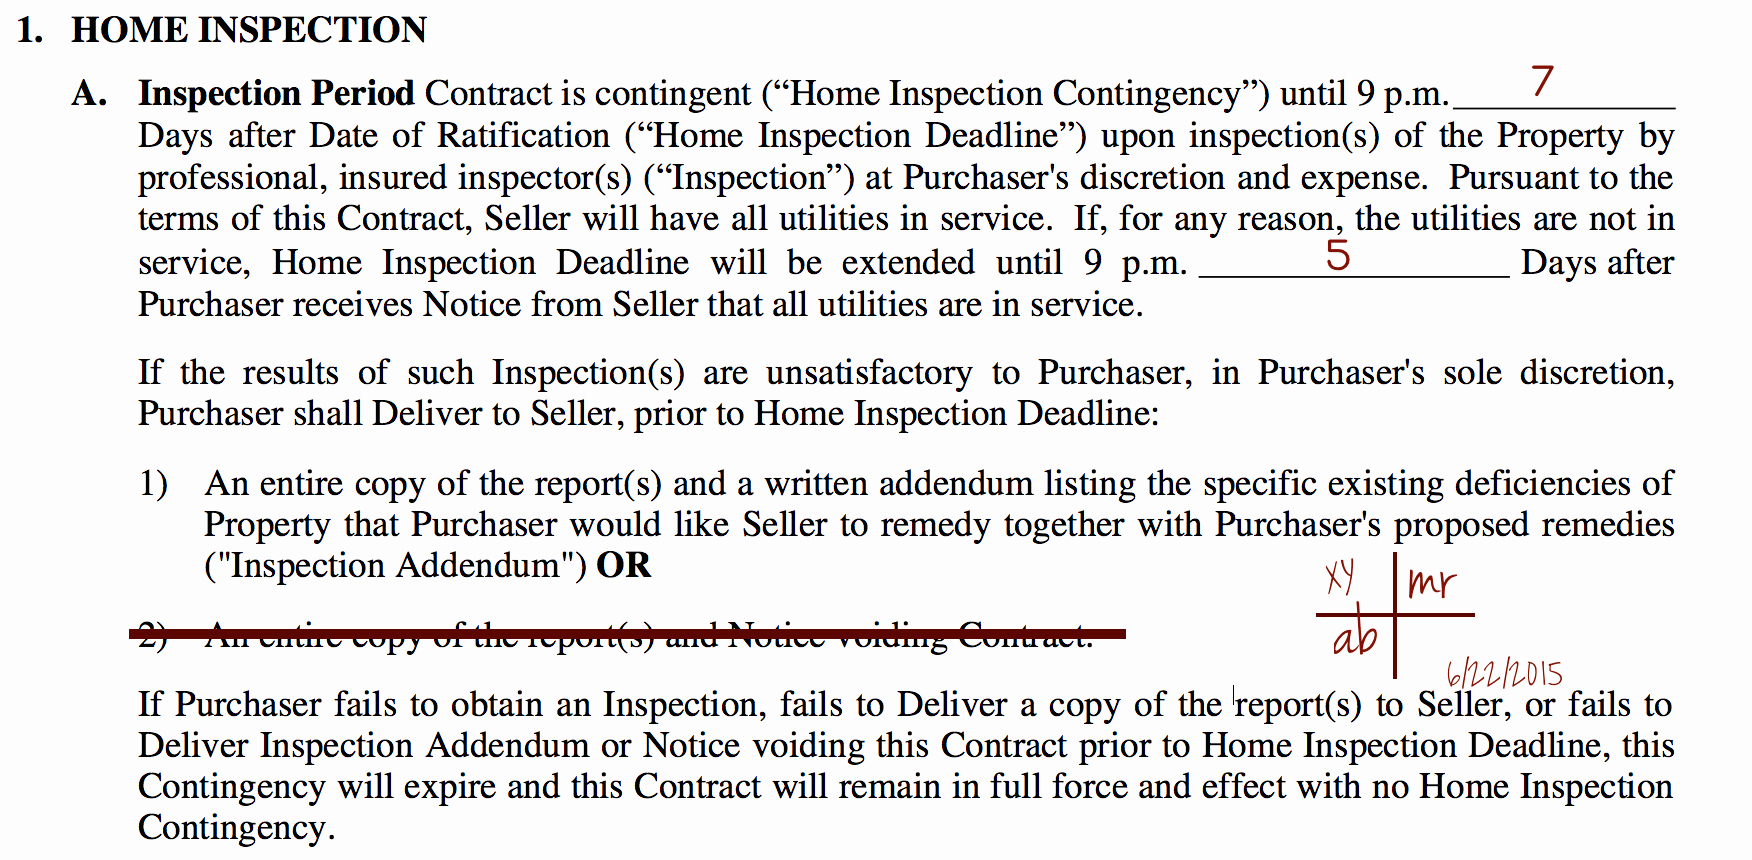 Contingency Contracting Example Awesome Making the Nvar Contract as is with A Home Inspection